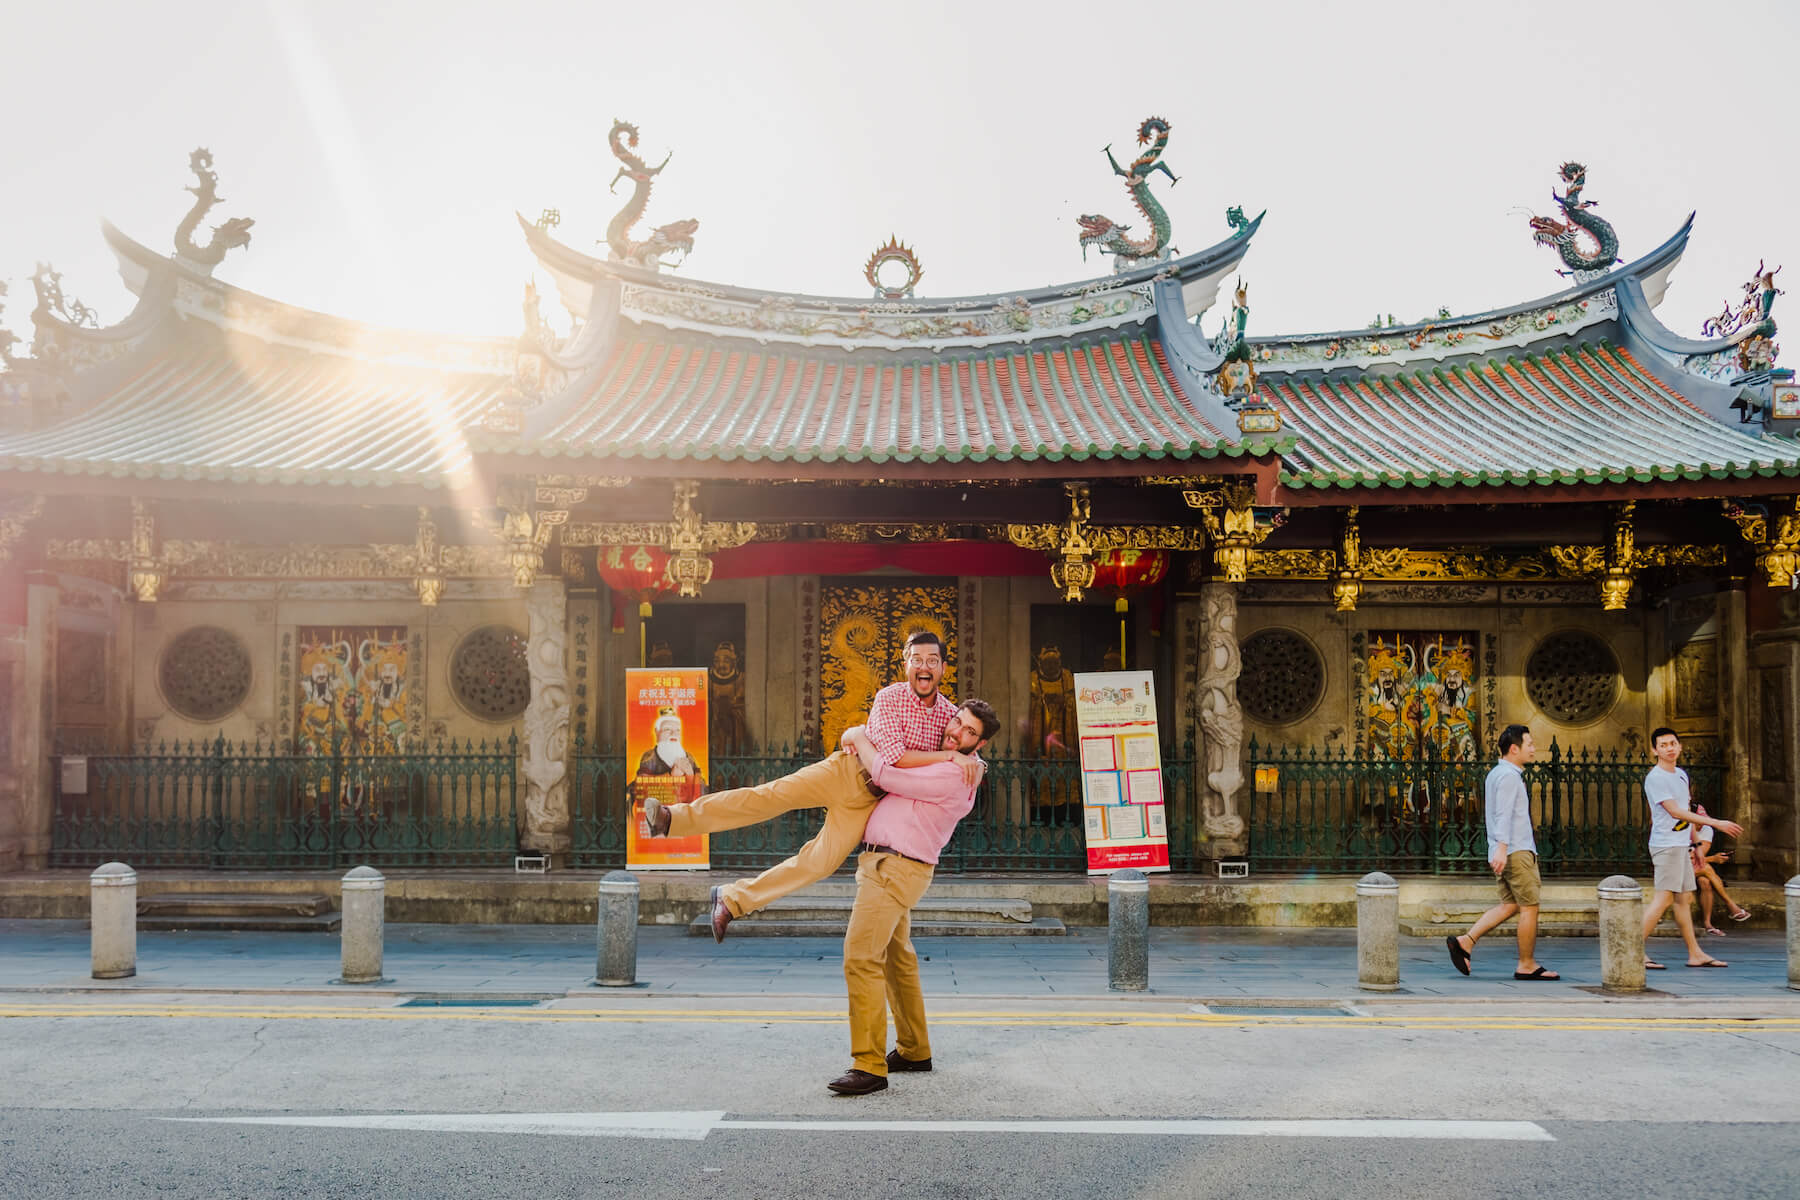 LGBT couple in front of a Shrine in Singapore, Singapore